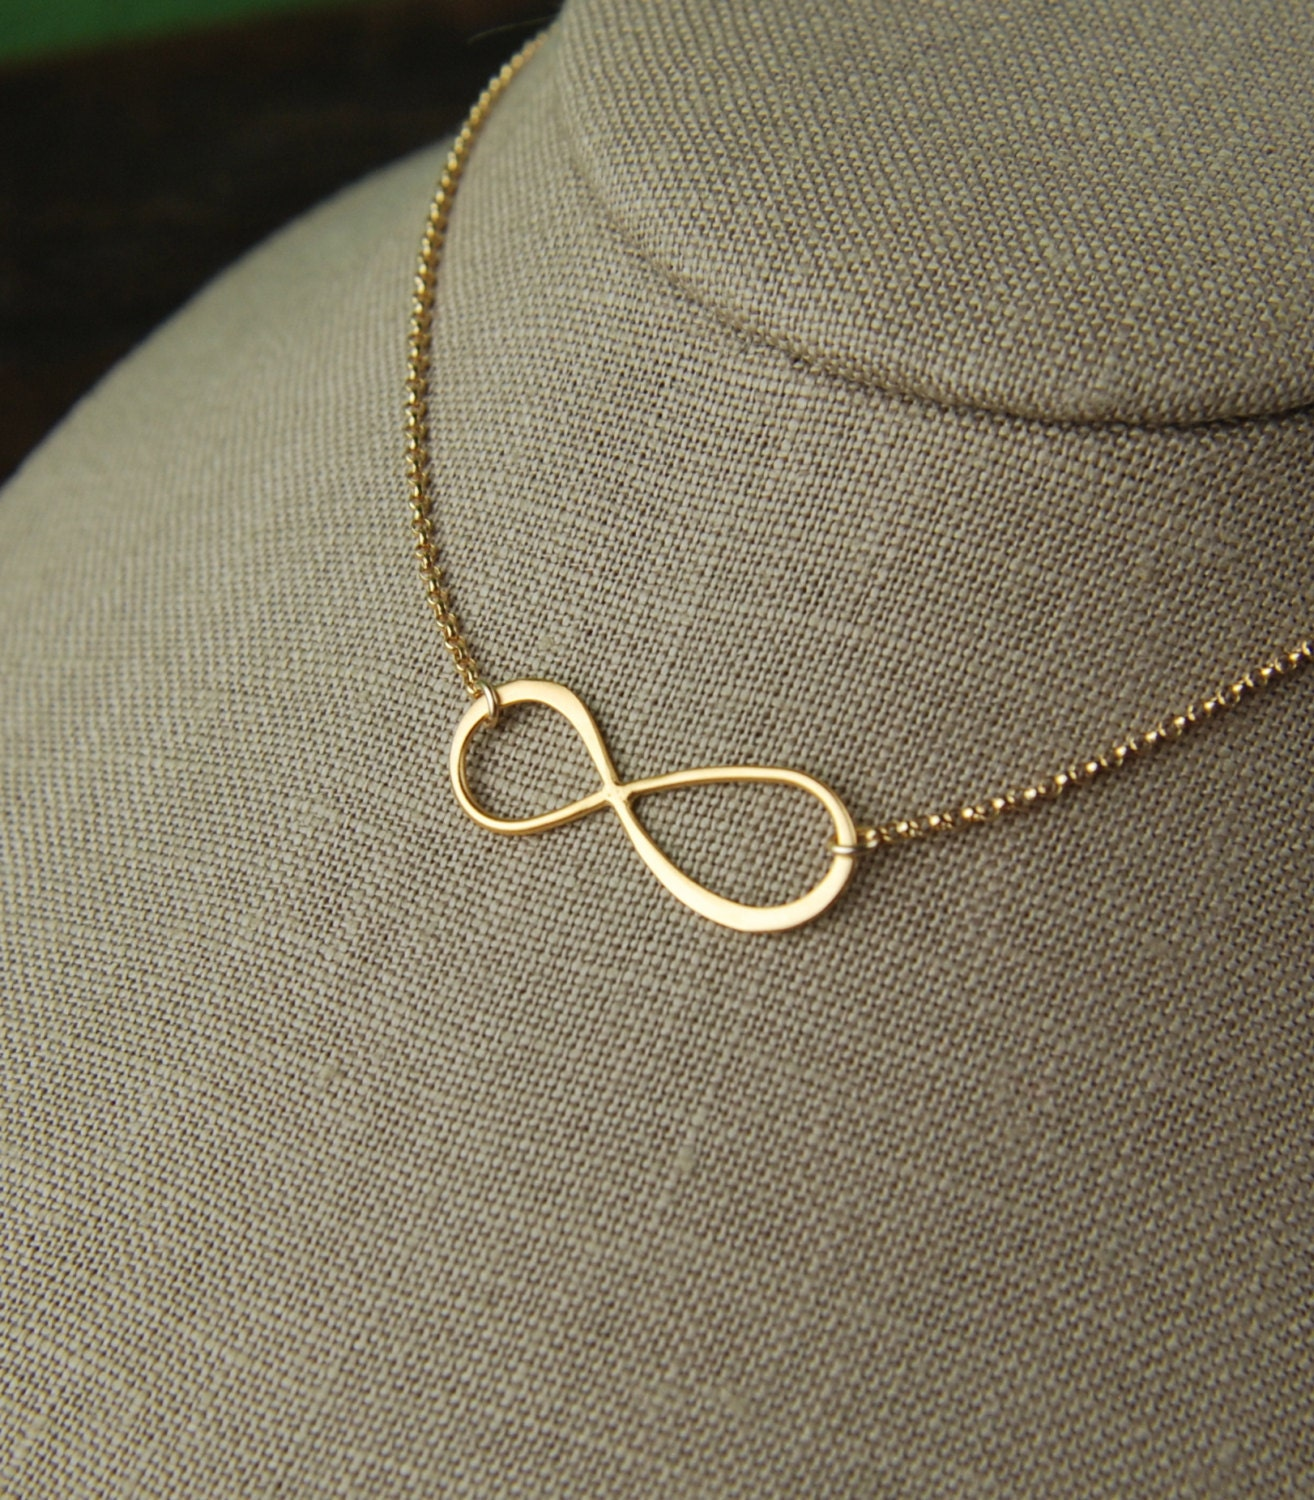 accents mv hover diamond sterling infinity sign symbol kaystore to necklace zoom kay en silver zm